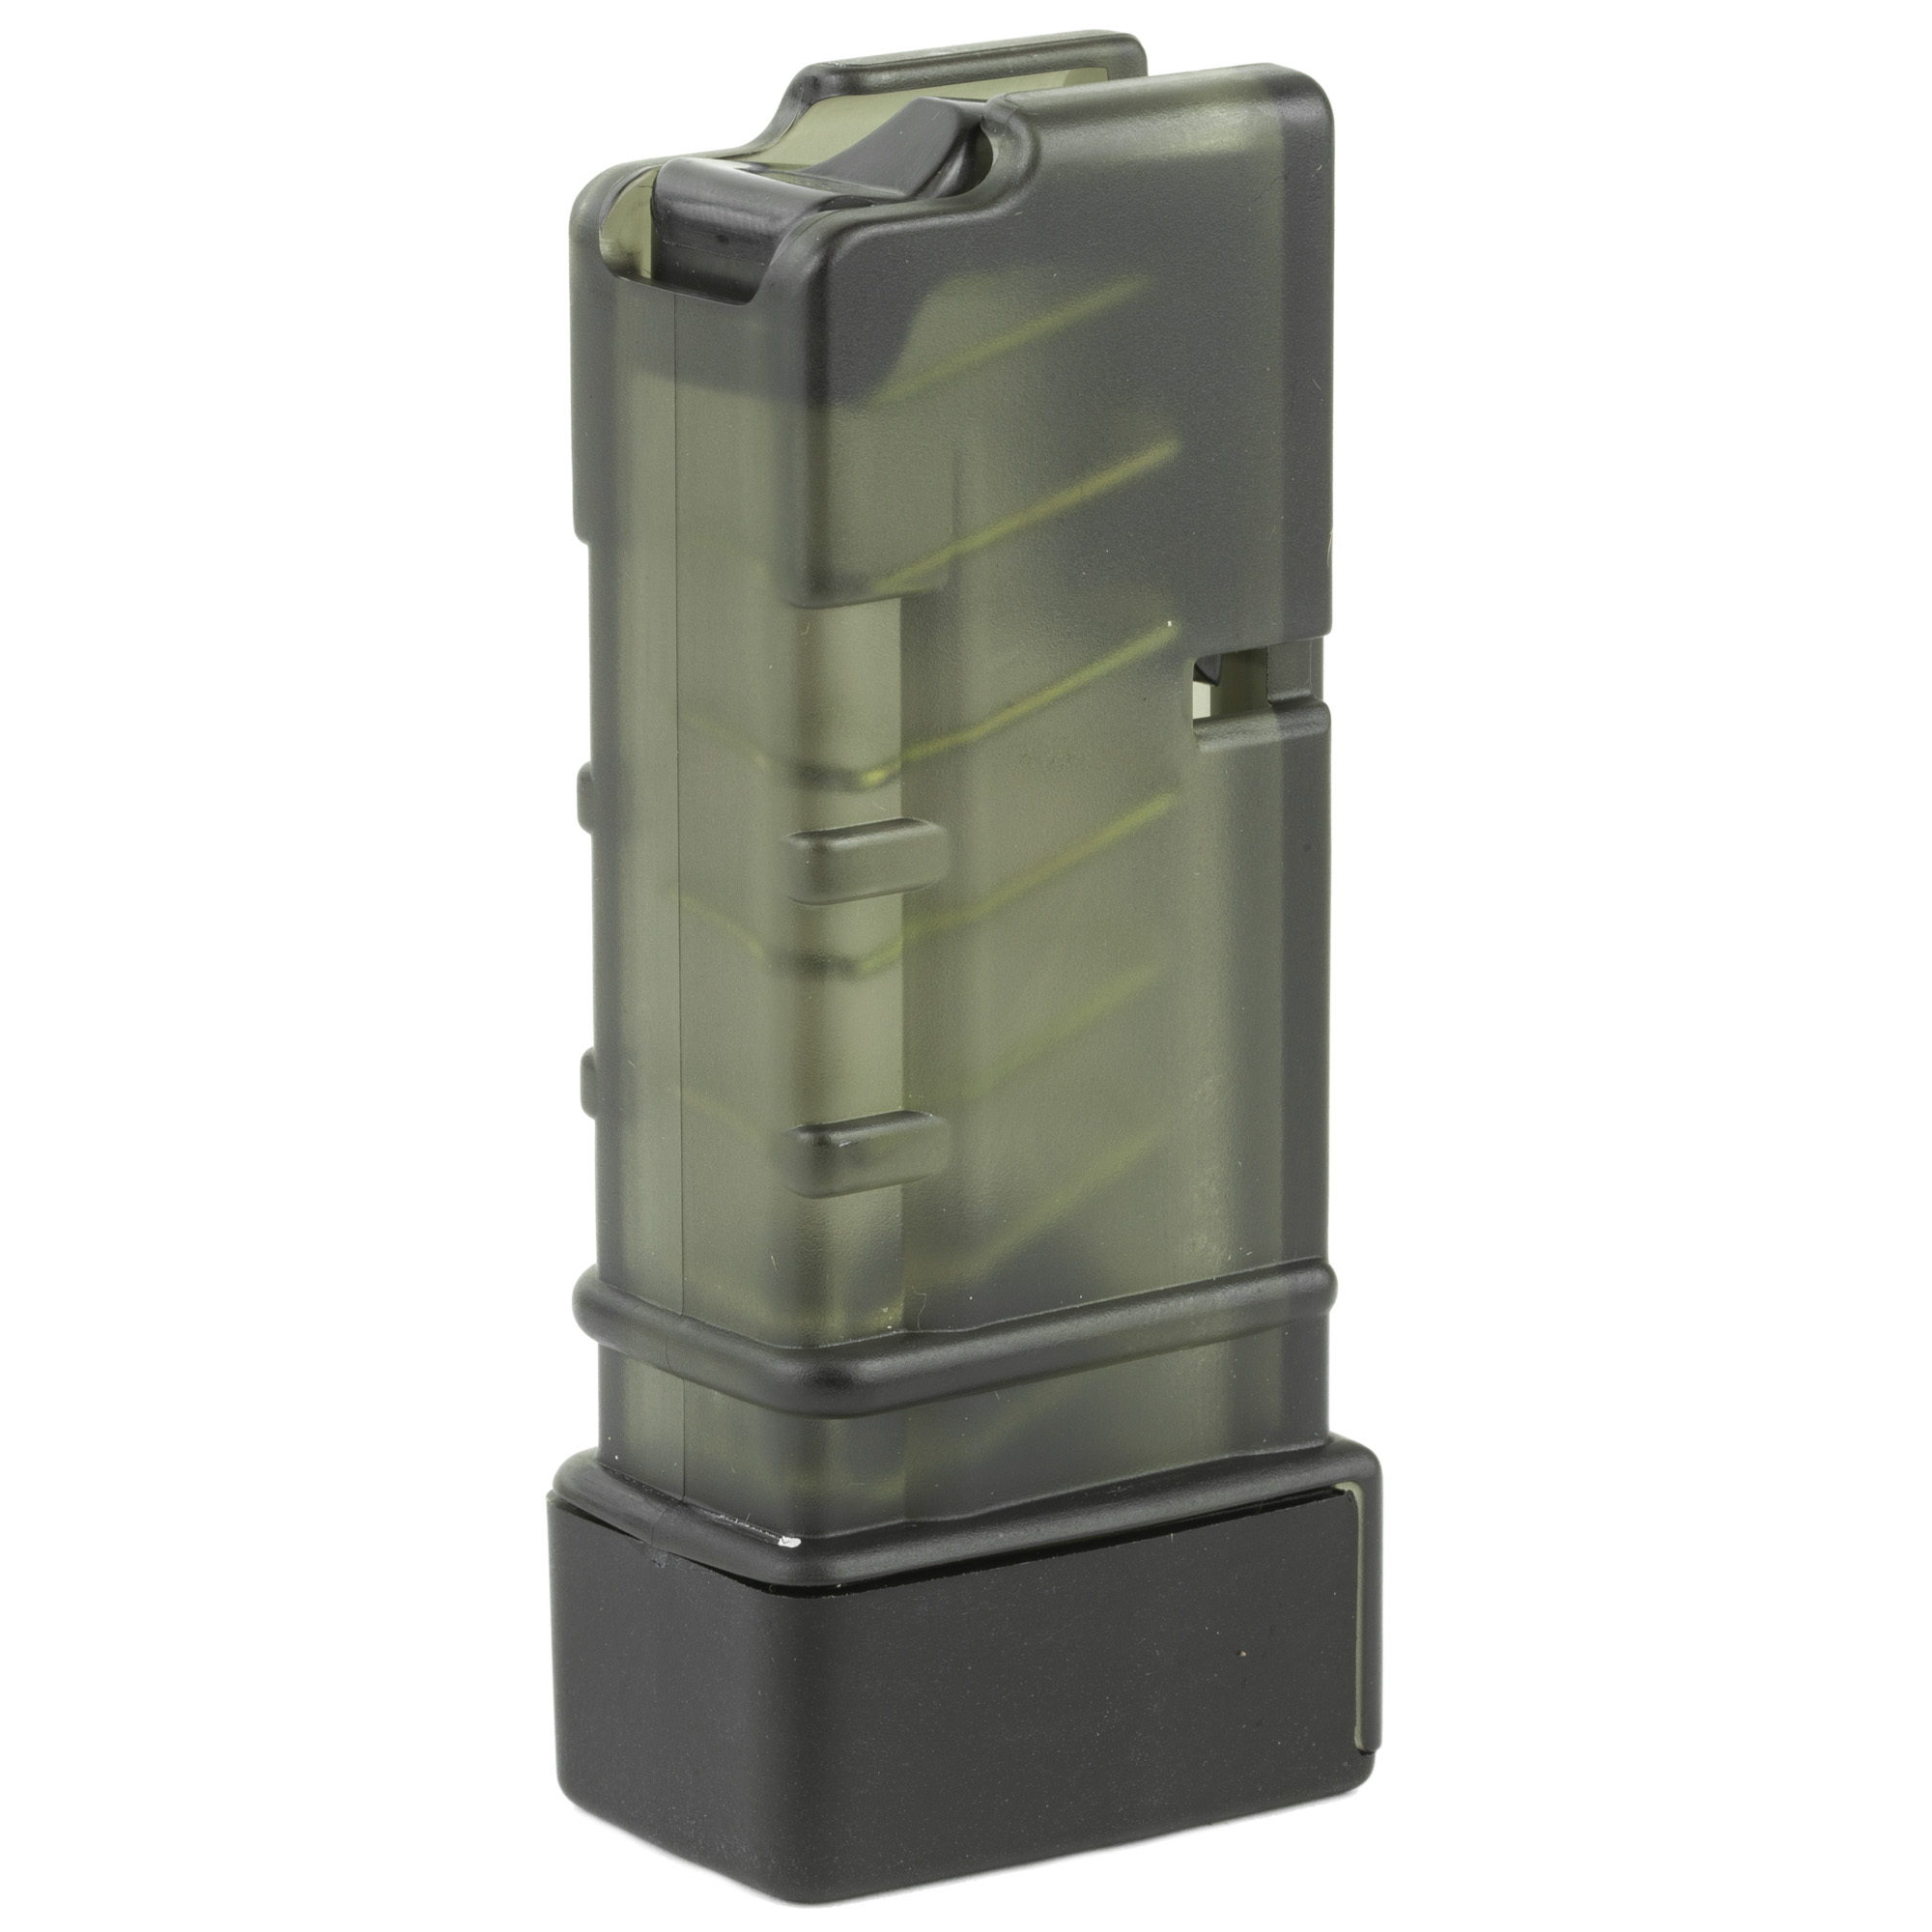 This Grand Power SP9A1 magazine features polymer construction and a high quality spring and follower.